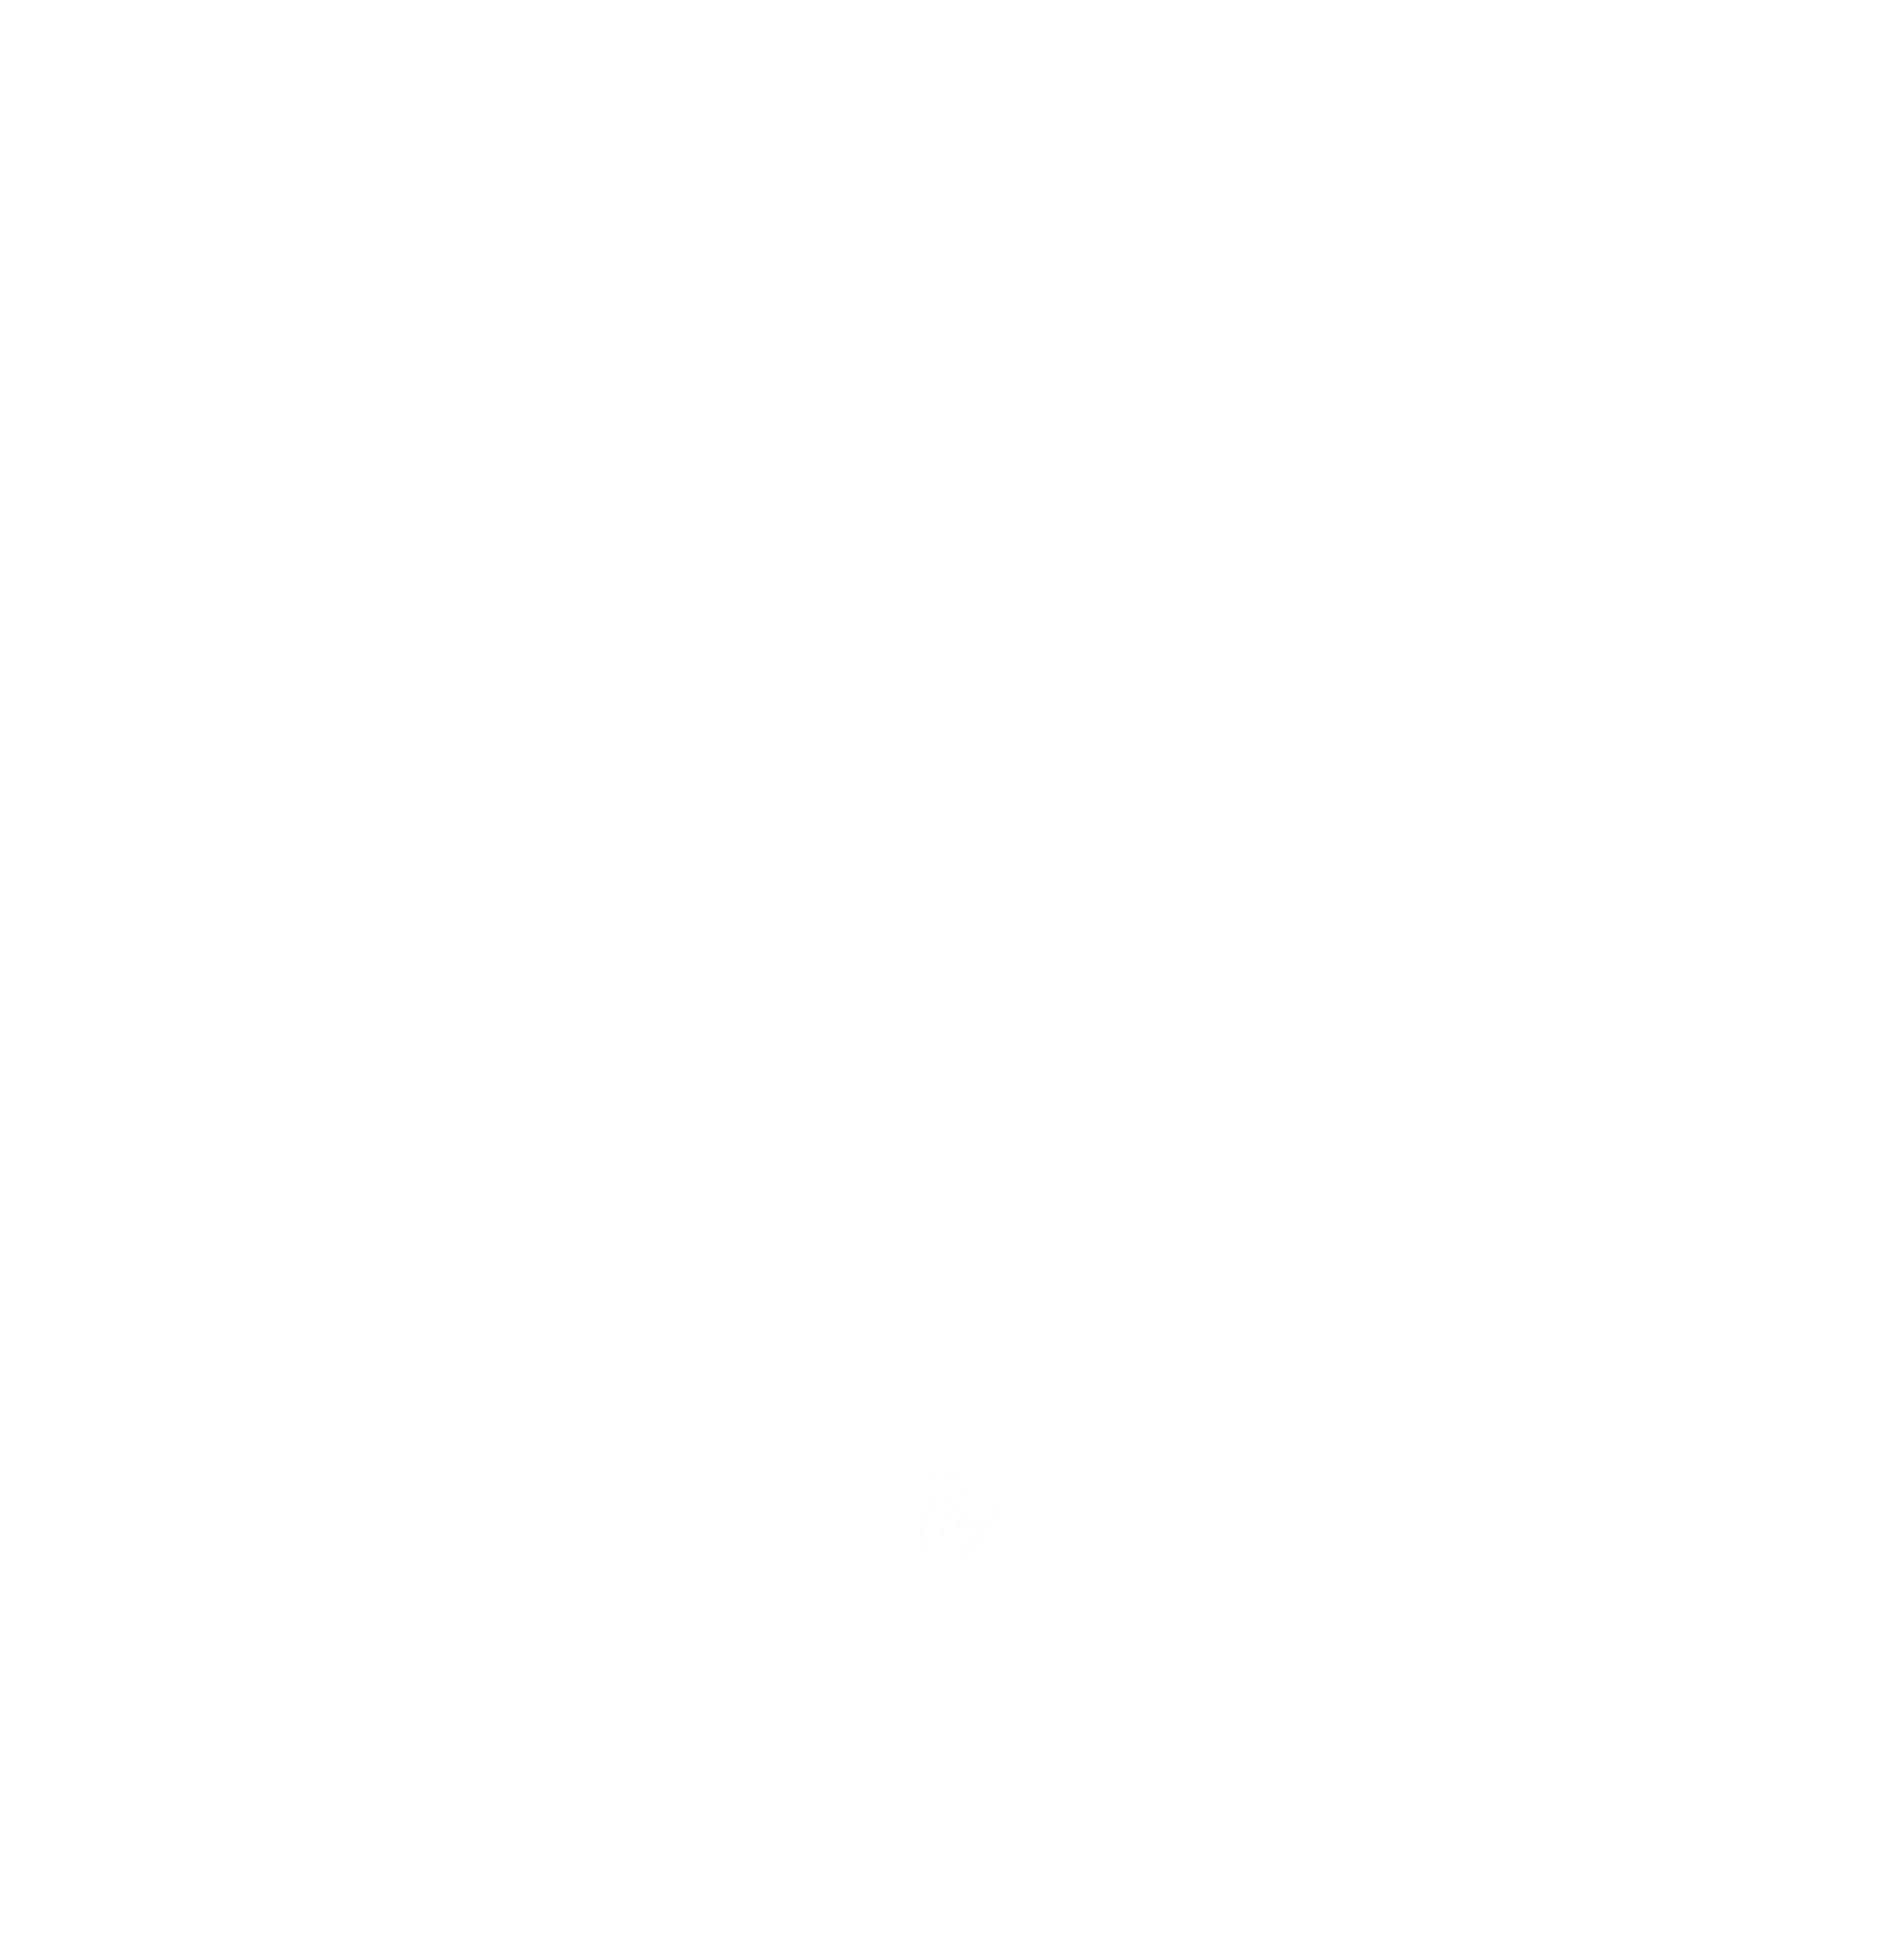 Merry christmas clipart black and white picture library stock Merry Christmas Stamp PNG Clip Art Image | Gallery Yopriceville ... picture library stock